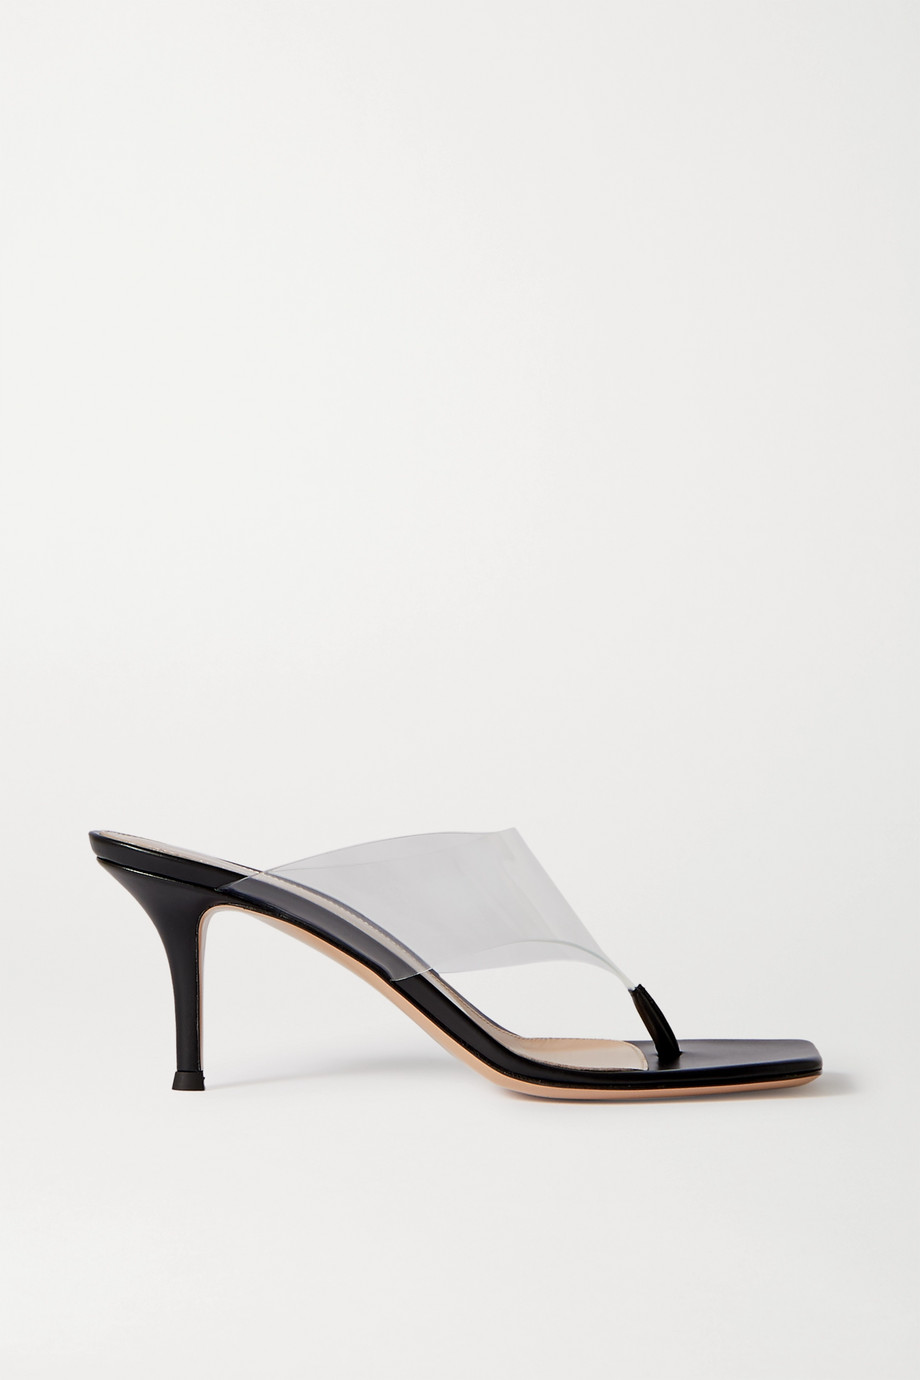 Gianvito Rossi 70 leather and PVC sandals